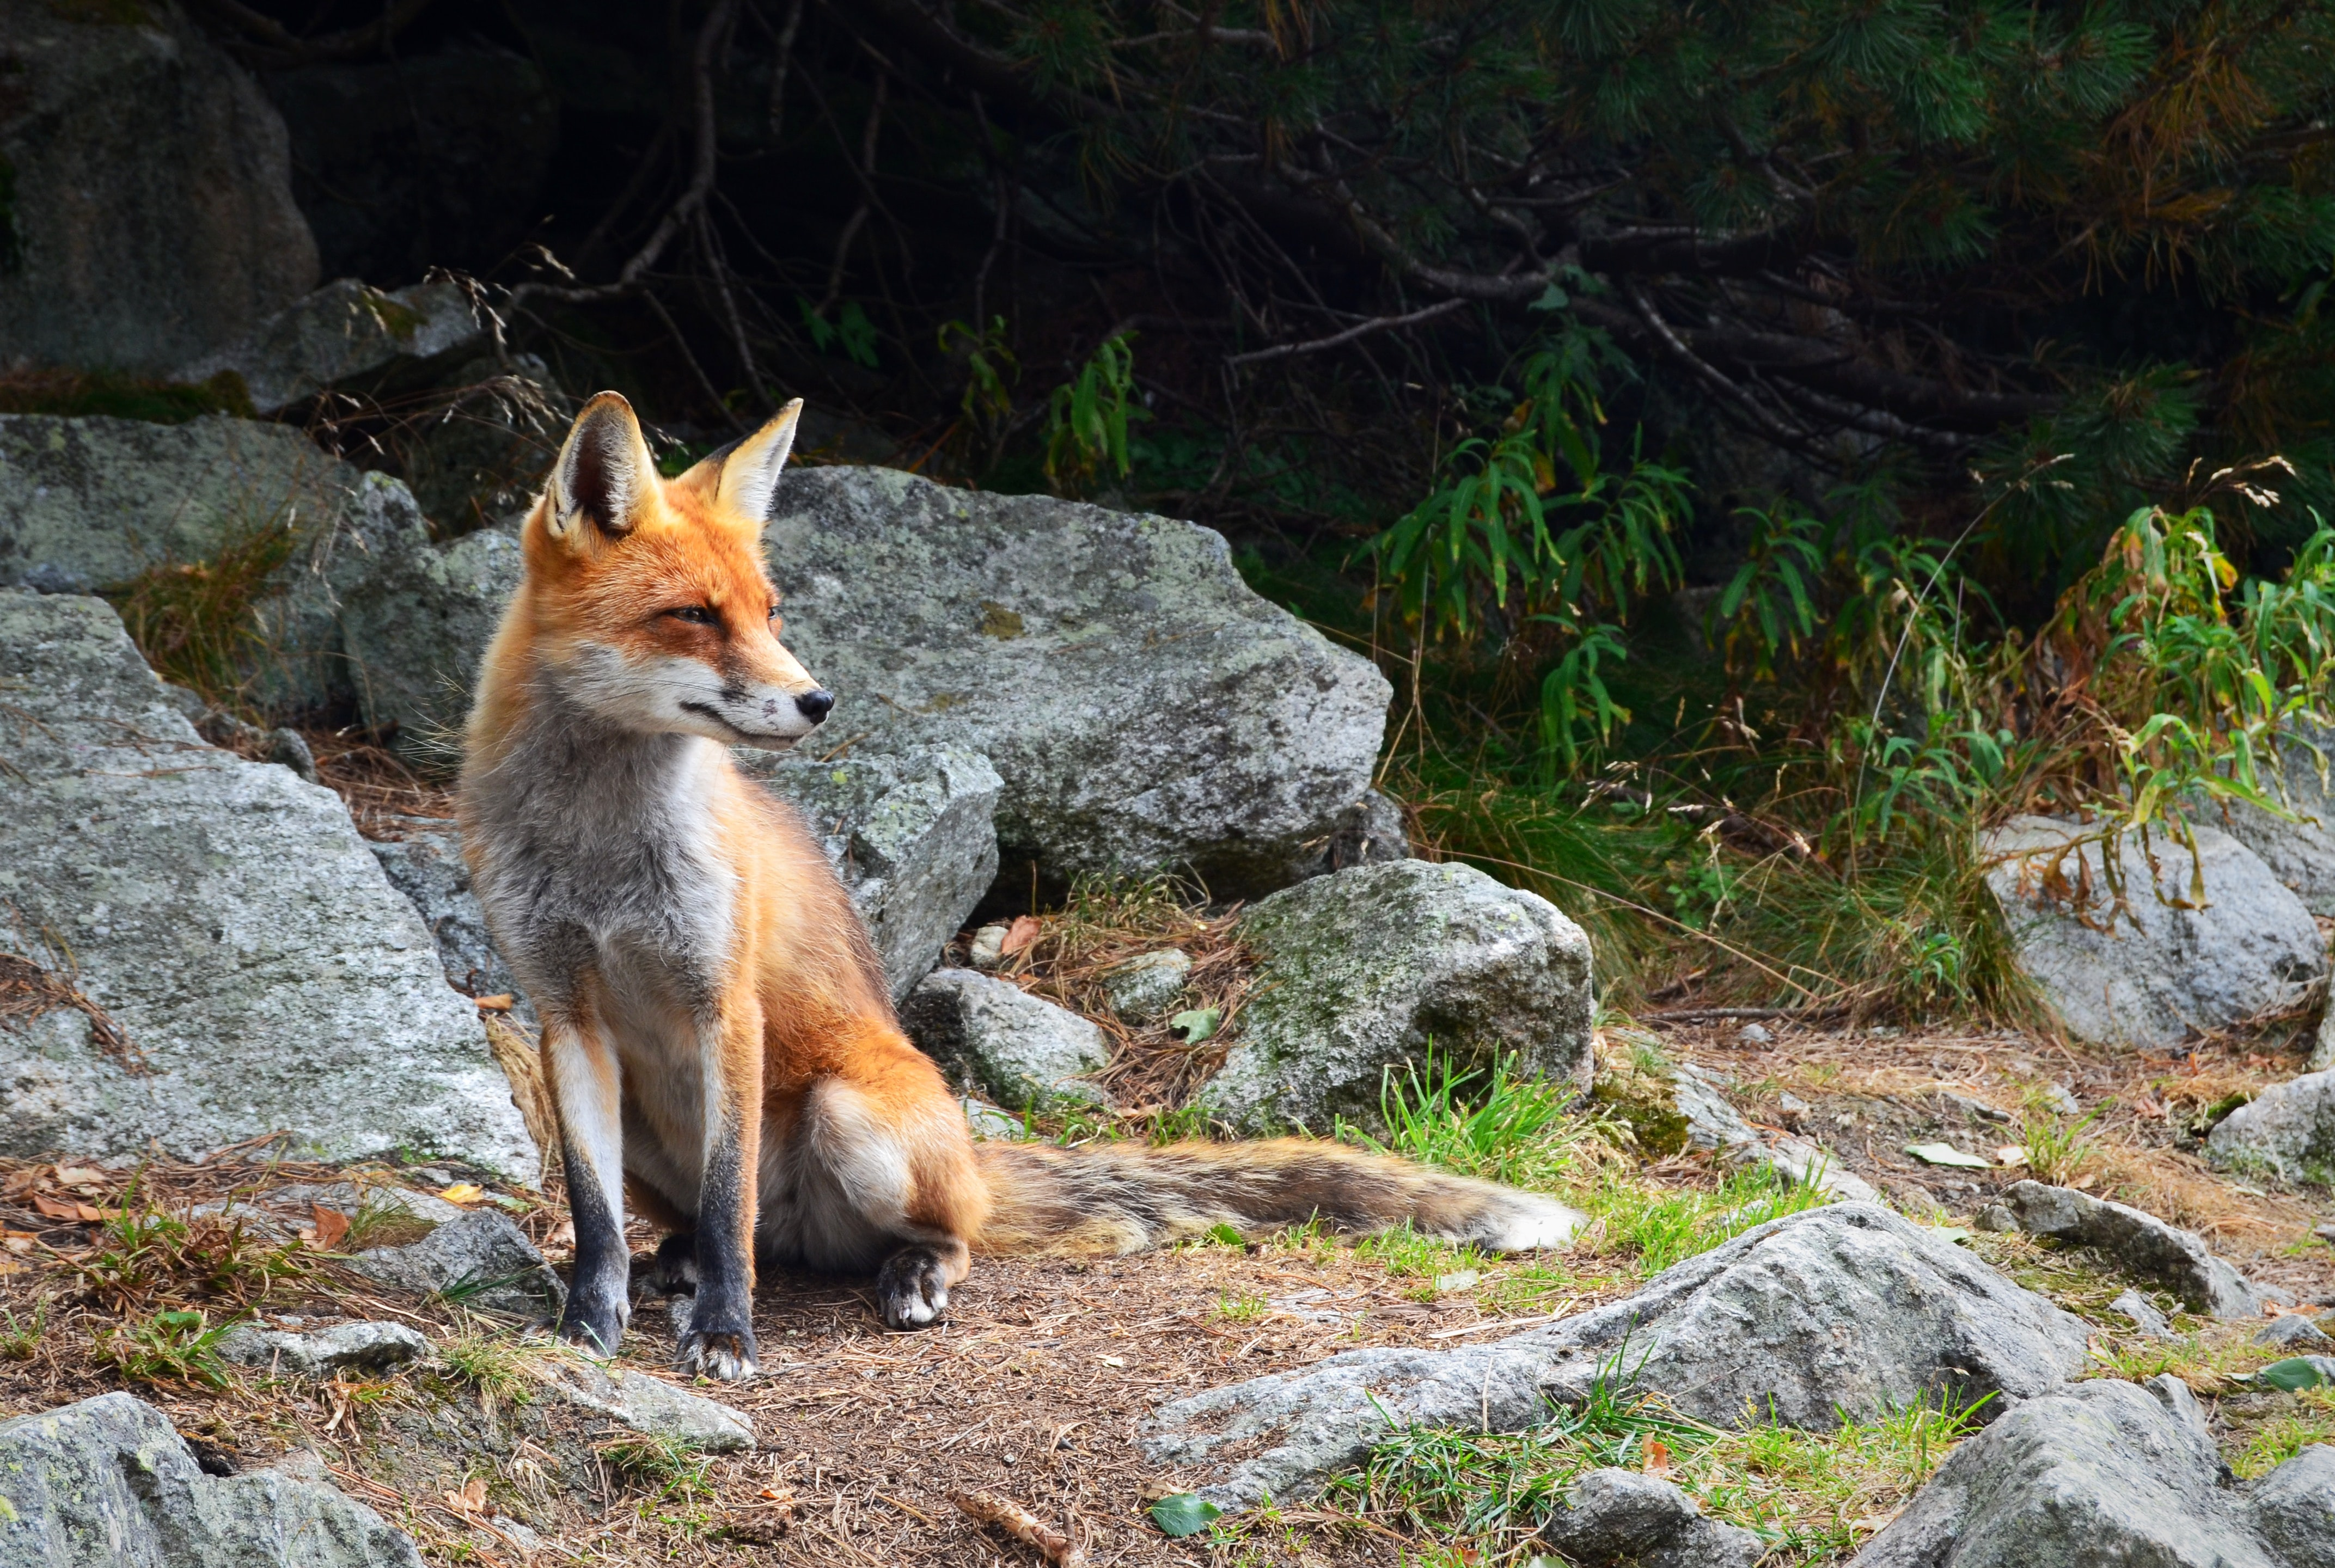 A fox squinting its eyes near weathered rocks in a forest